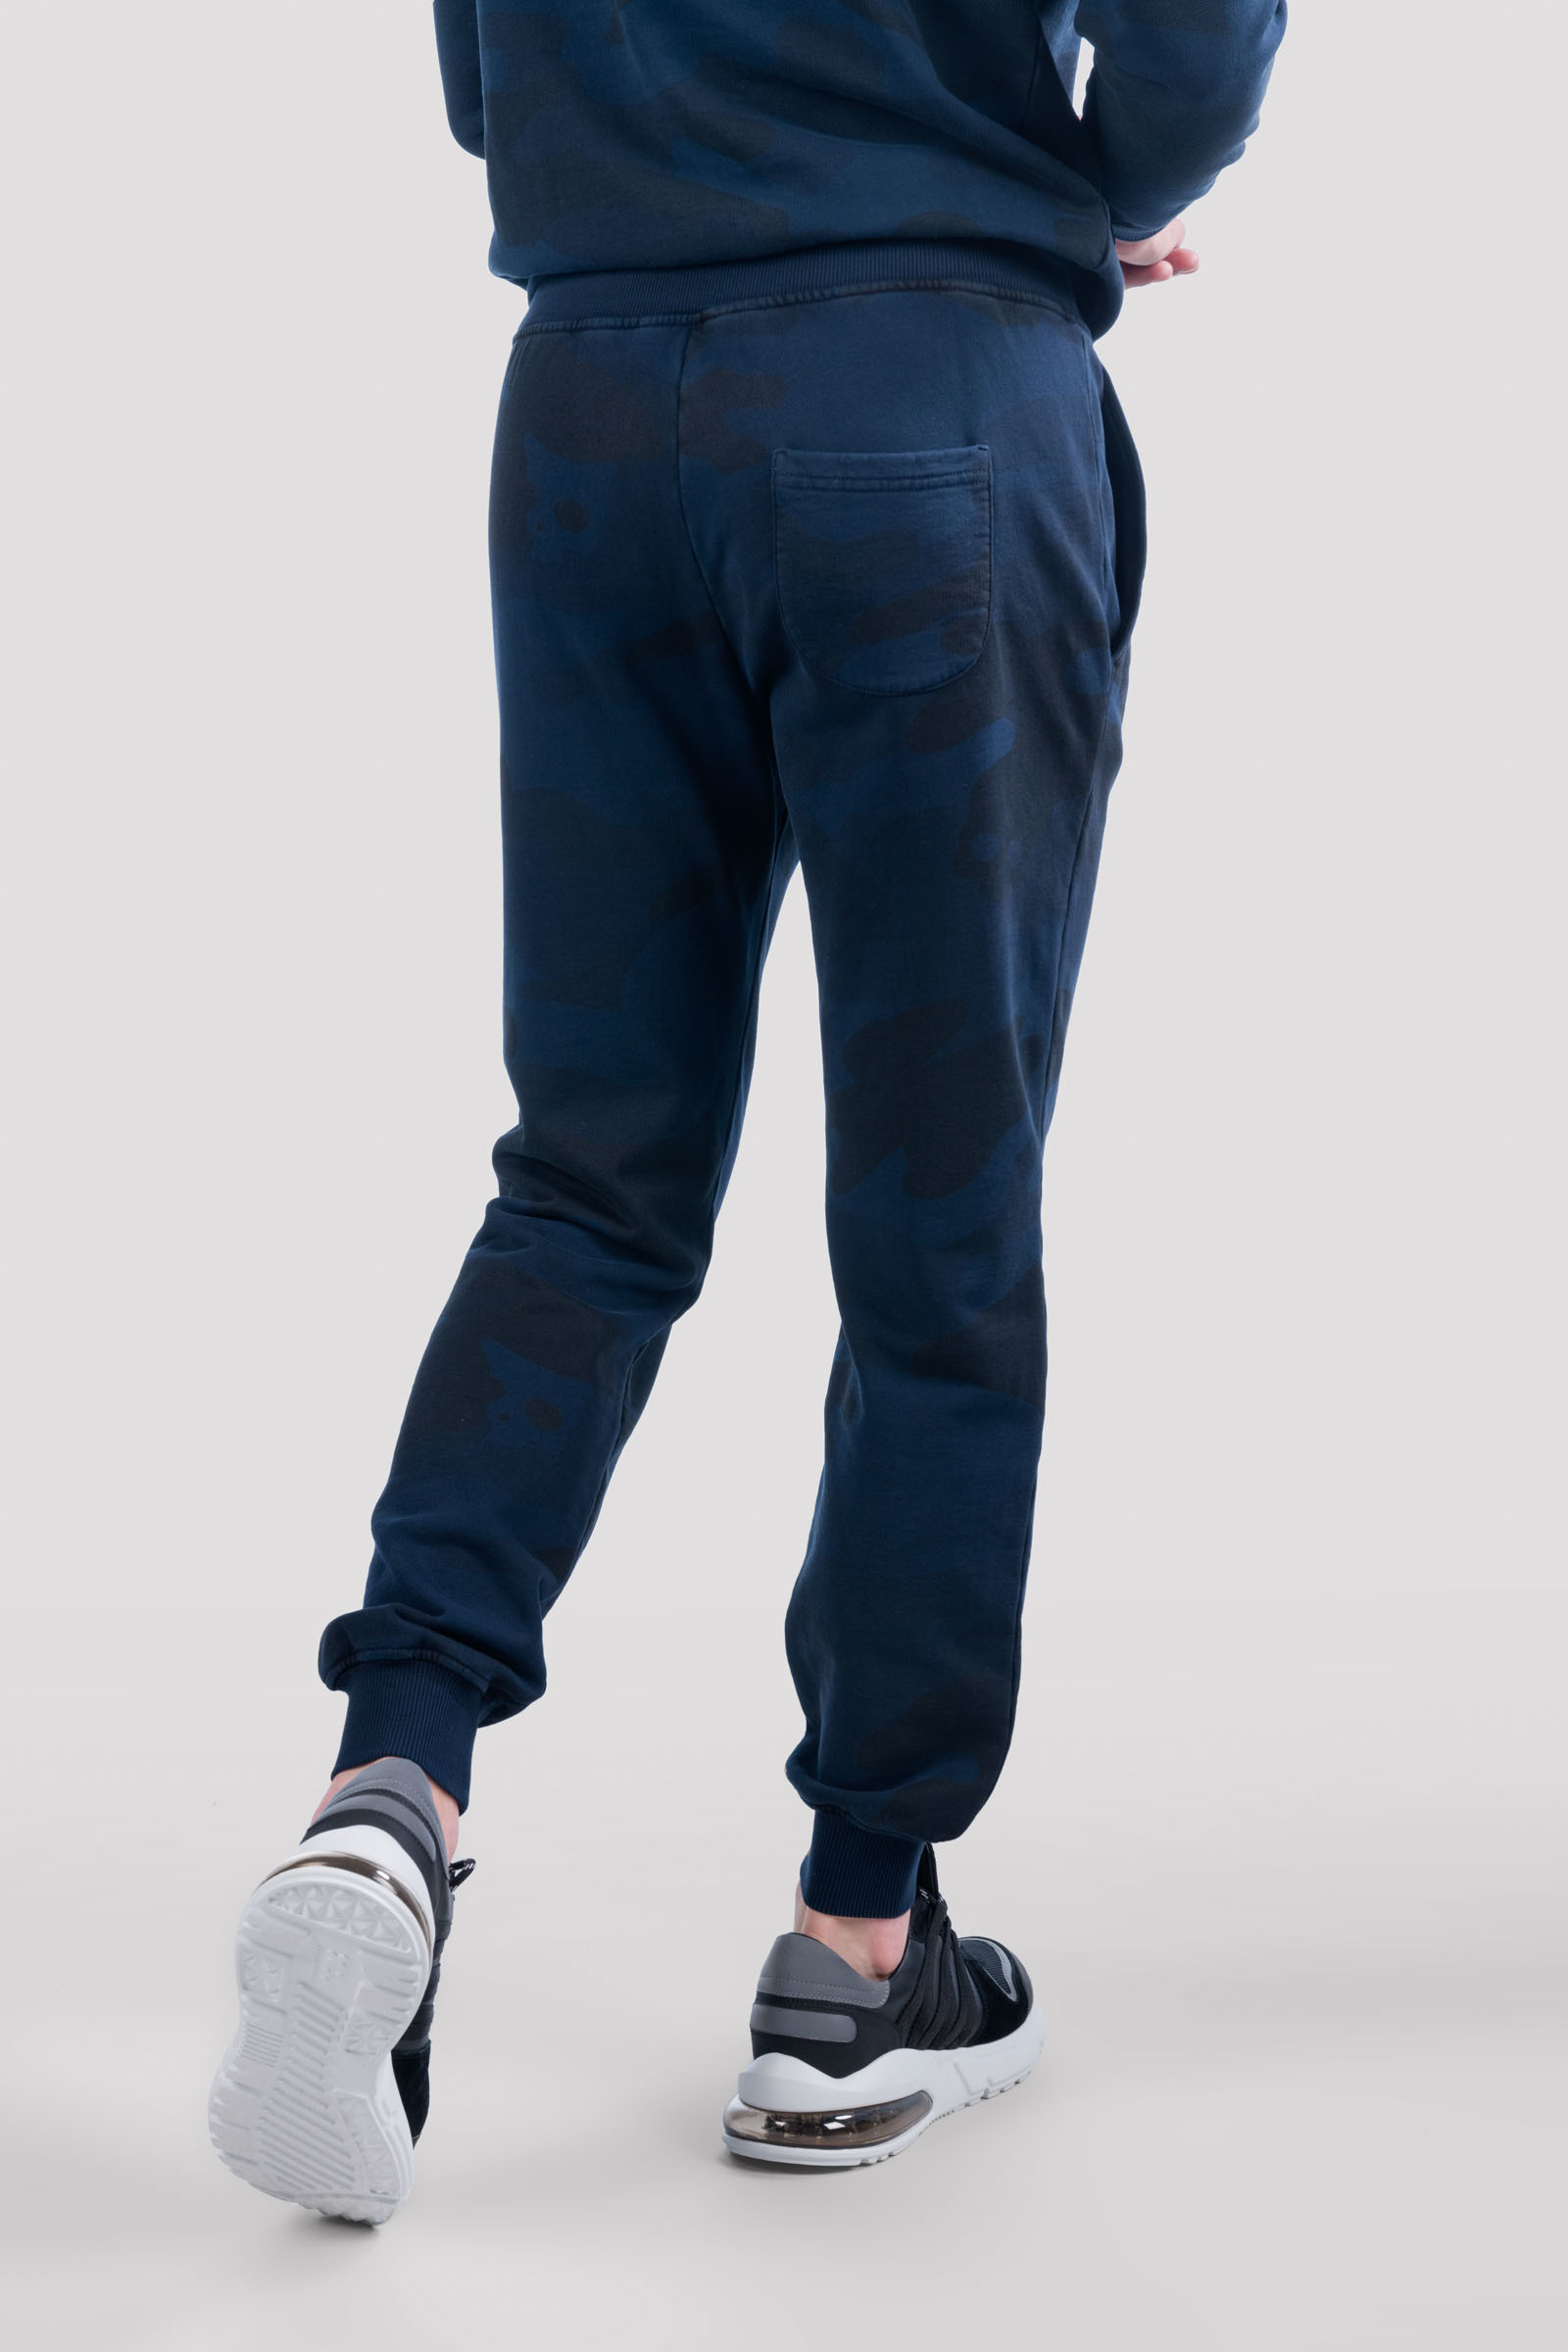 SHOPPING ON LINE HYDROGEN CAMO SWEATPANTS NEW COLLECTION FALL/WINTER 2022